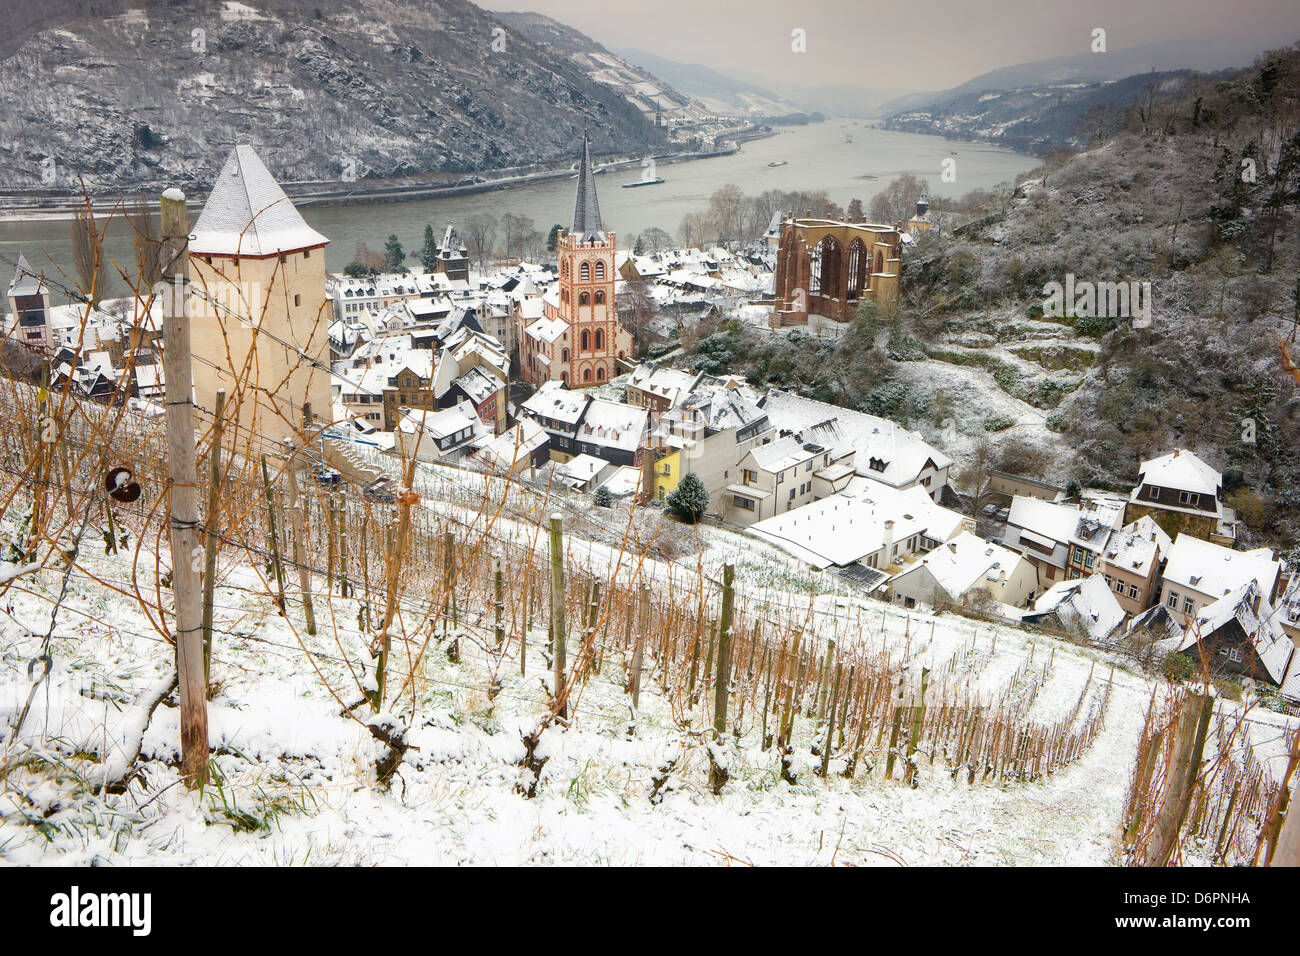 Overview of Bacharach and the Rhine River in winter, Rheinland-Pfalz (Rhineland-Palatinate), Germany, Europe - Stock Image